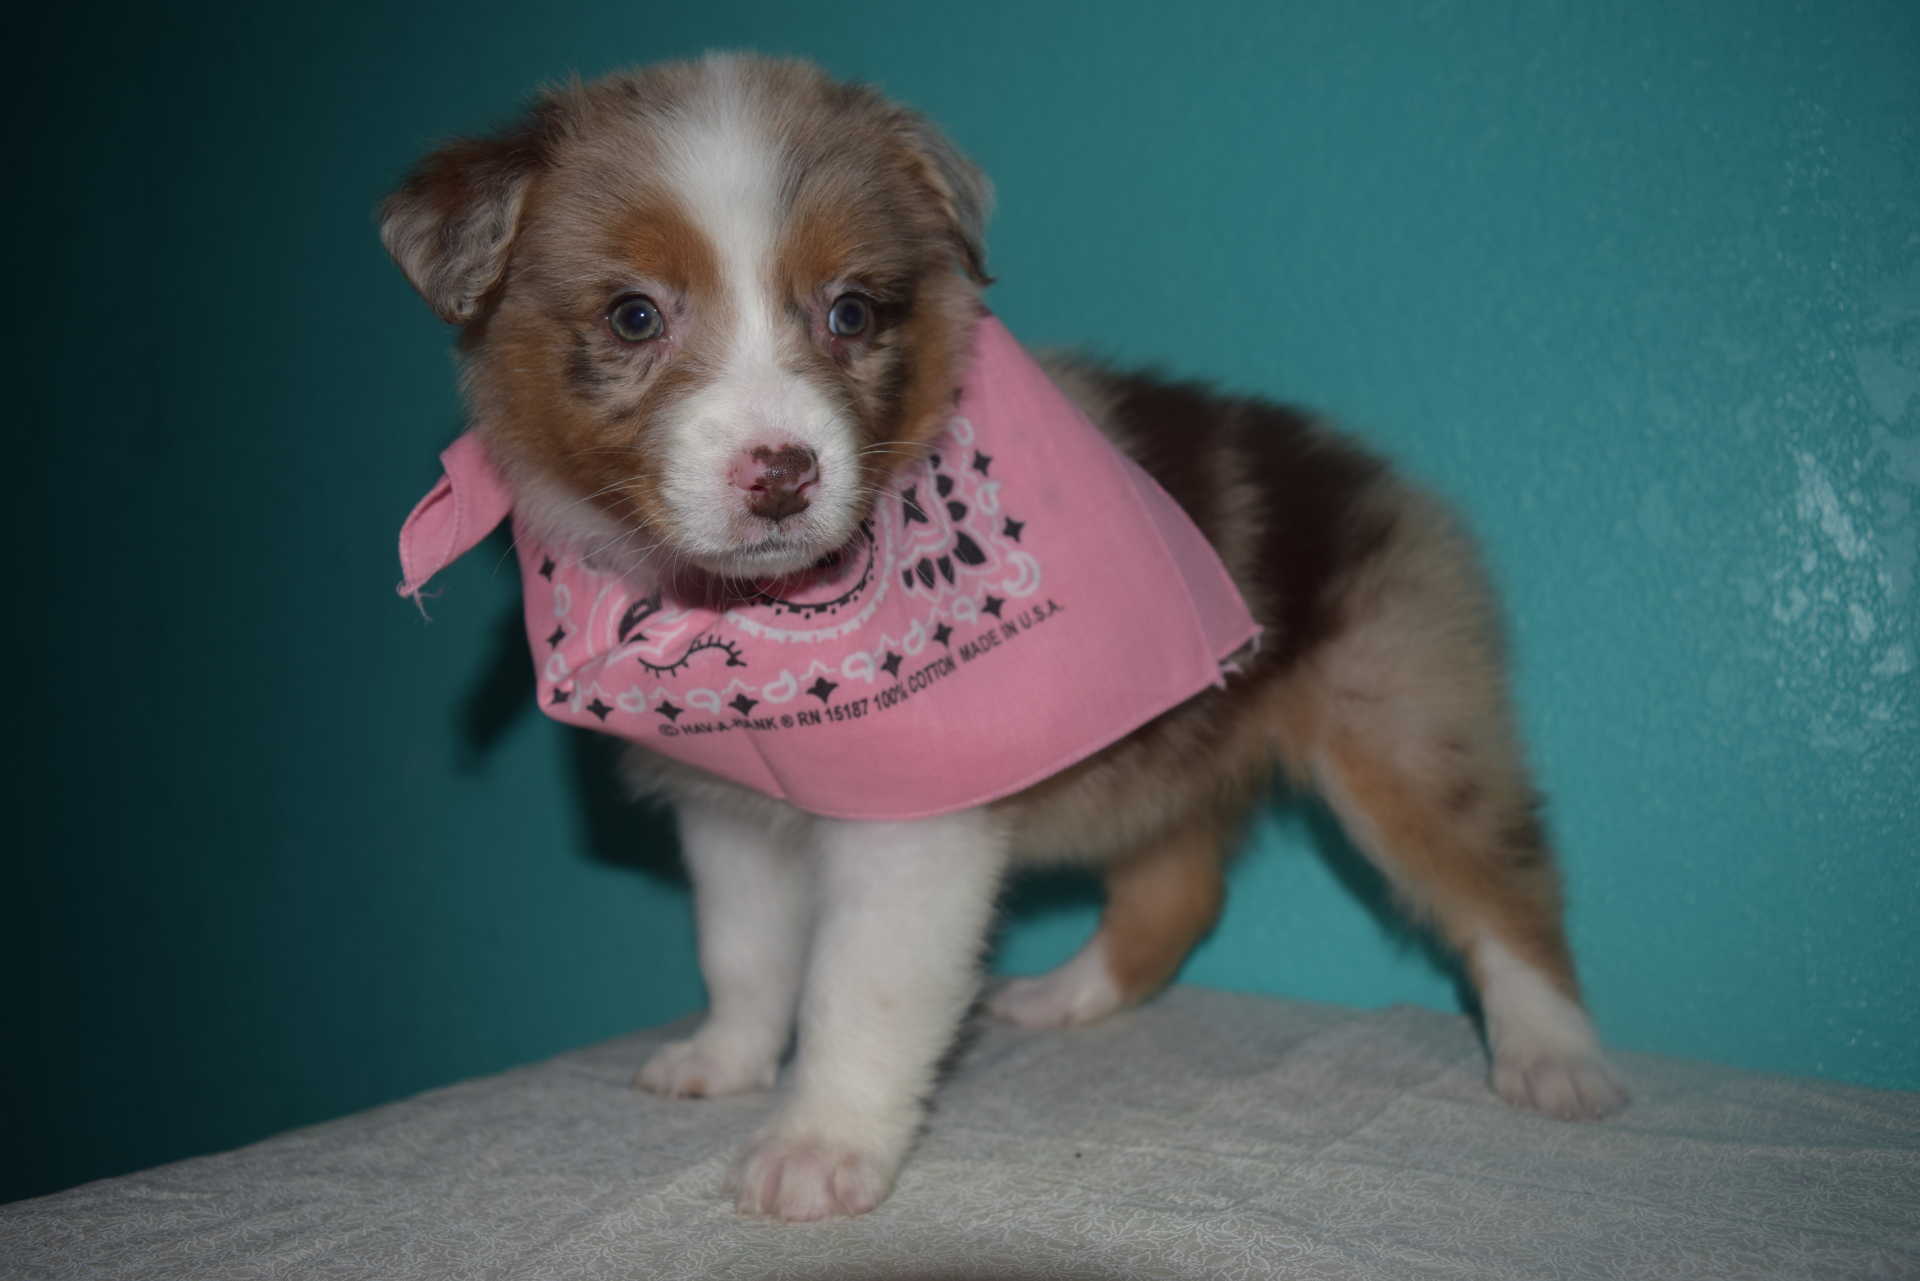 Red Merle Female Australian Shepherd Puppy #3 1 day